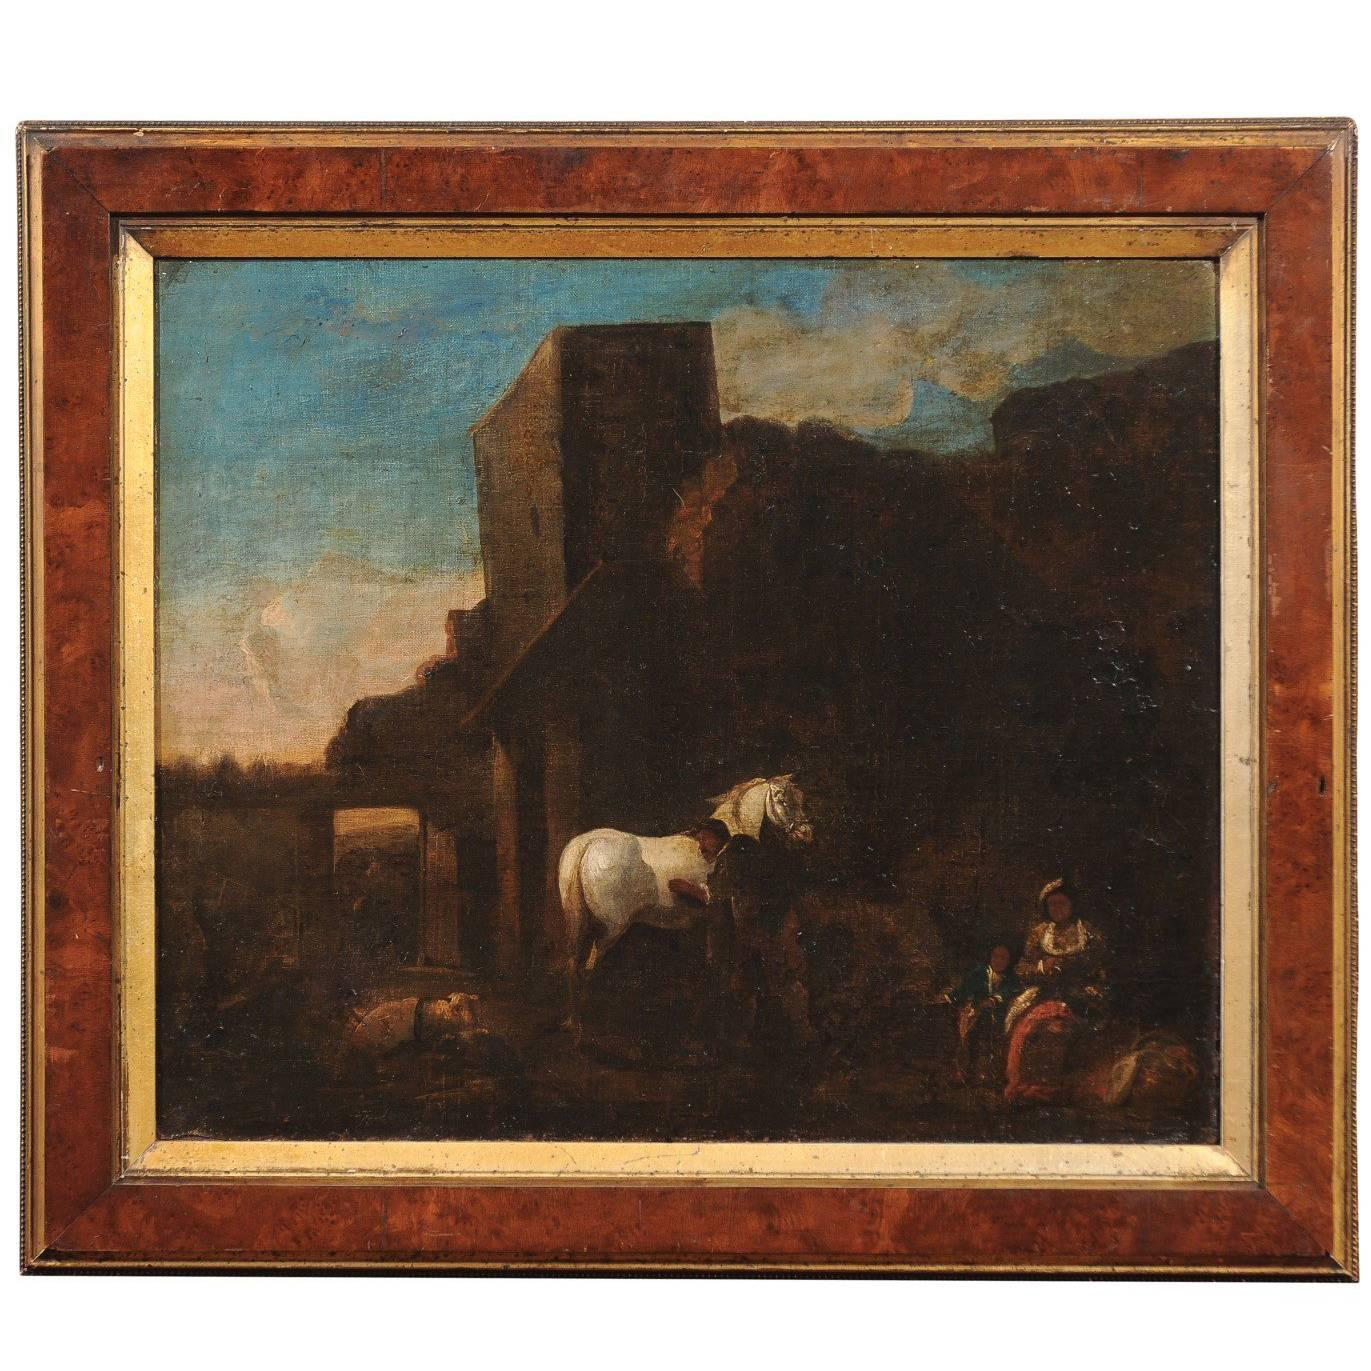 18th Century Italian Framed Oil on Canvas Painting of Horse in Landscape